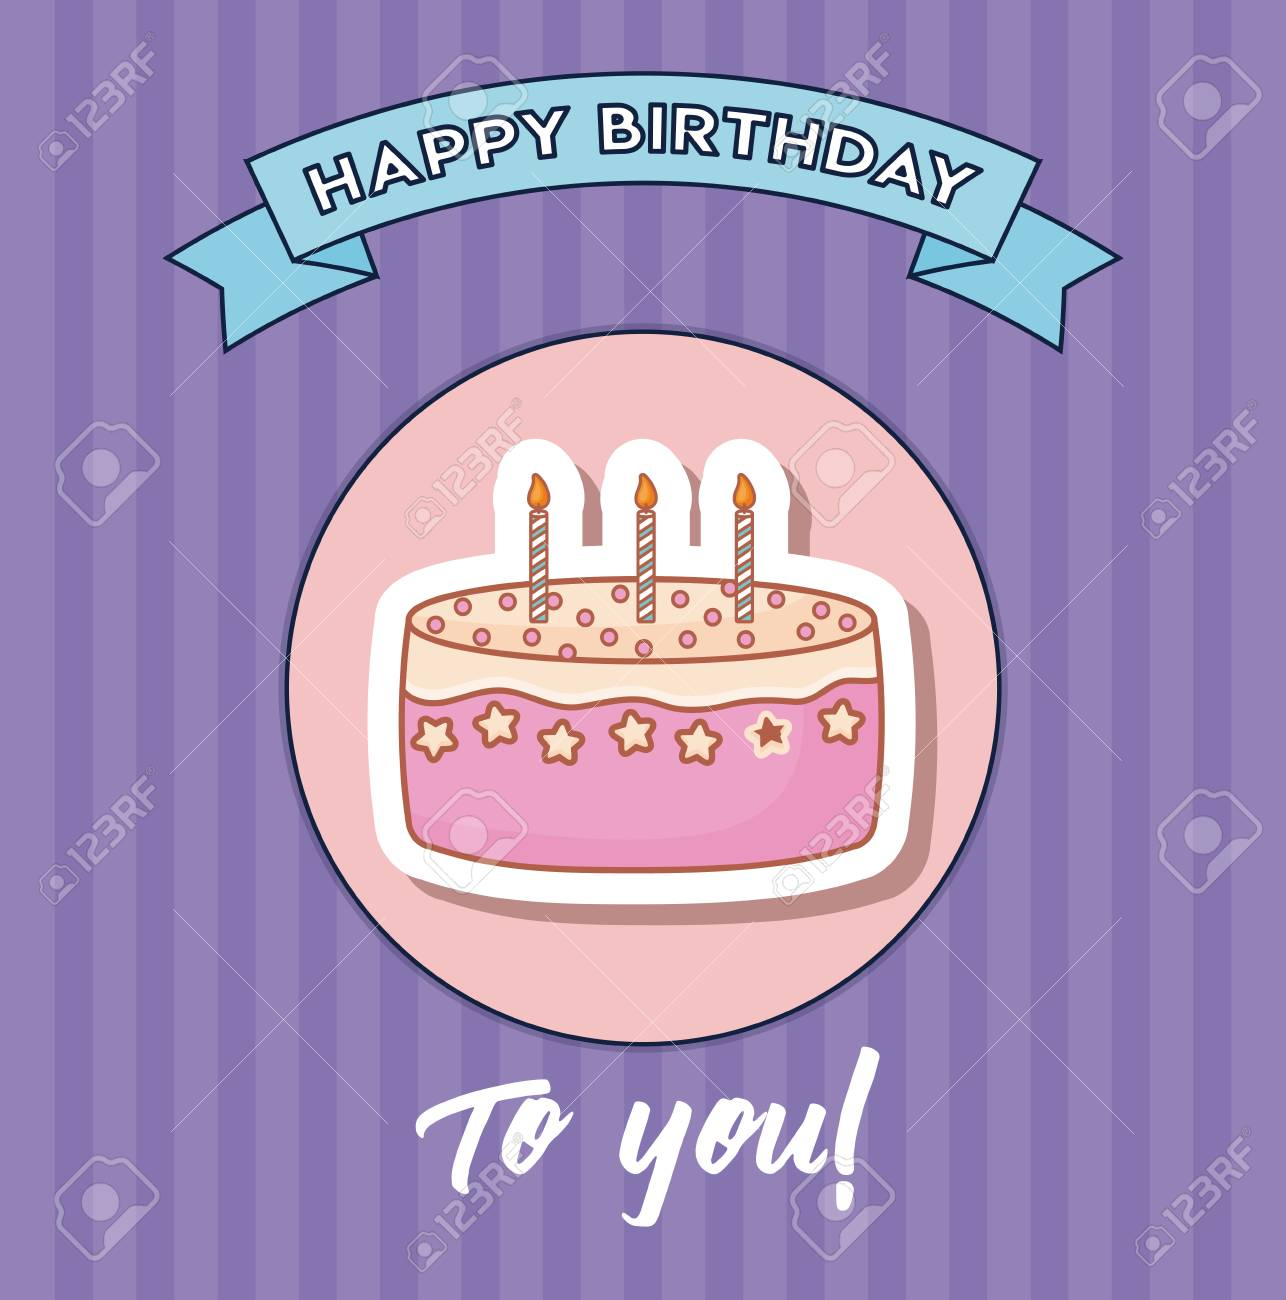 Wondrous Happy Birthday Design With Birthday Cake With Candles Icon Over Funny Birthday Cards Online Inifodamsfinfo